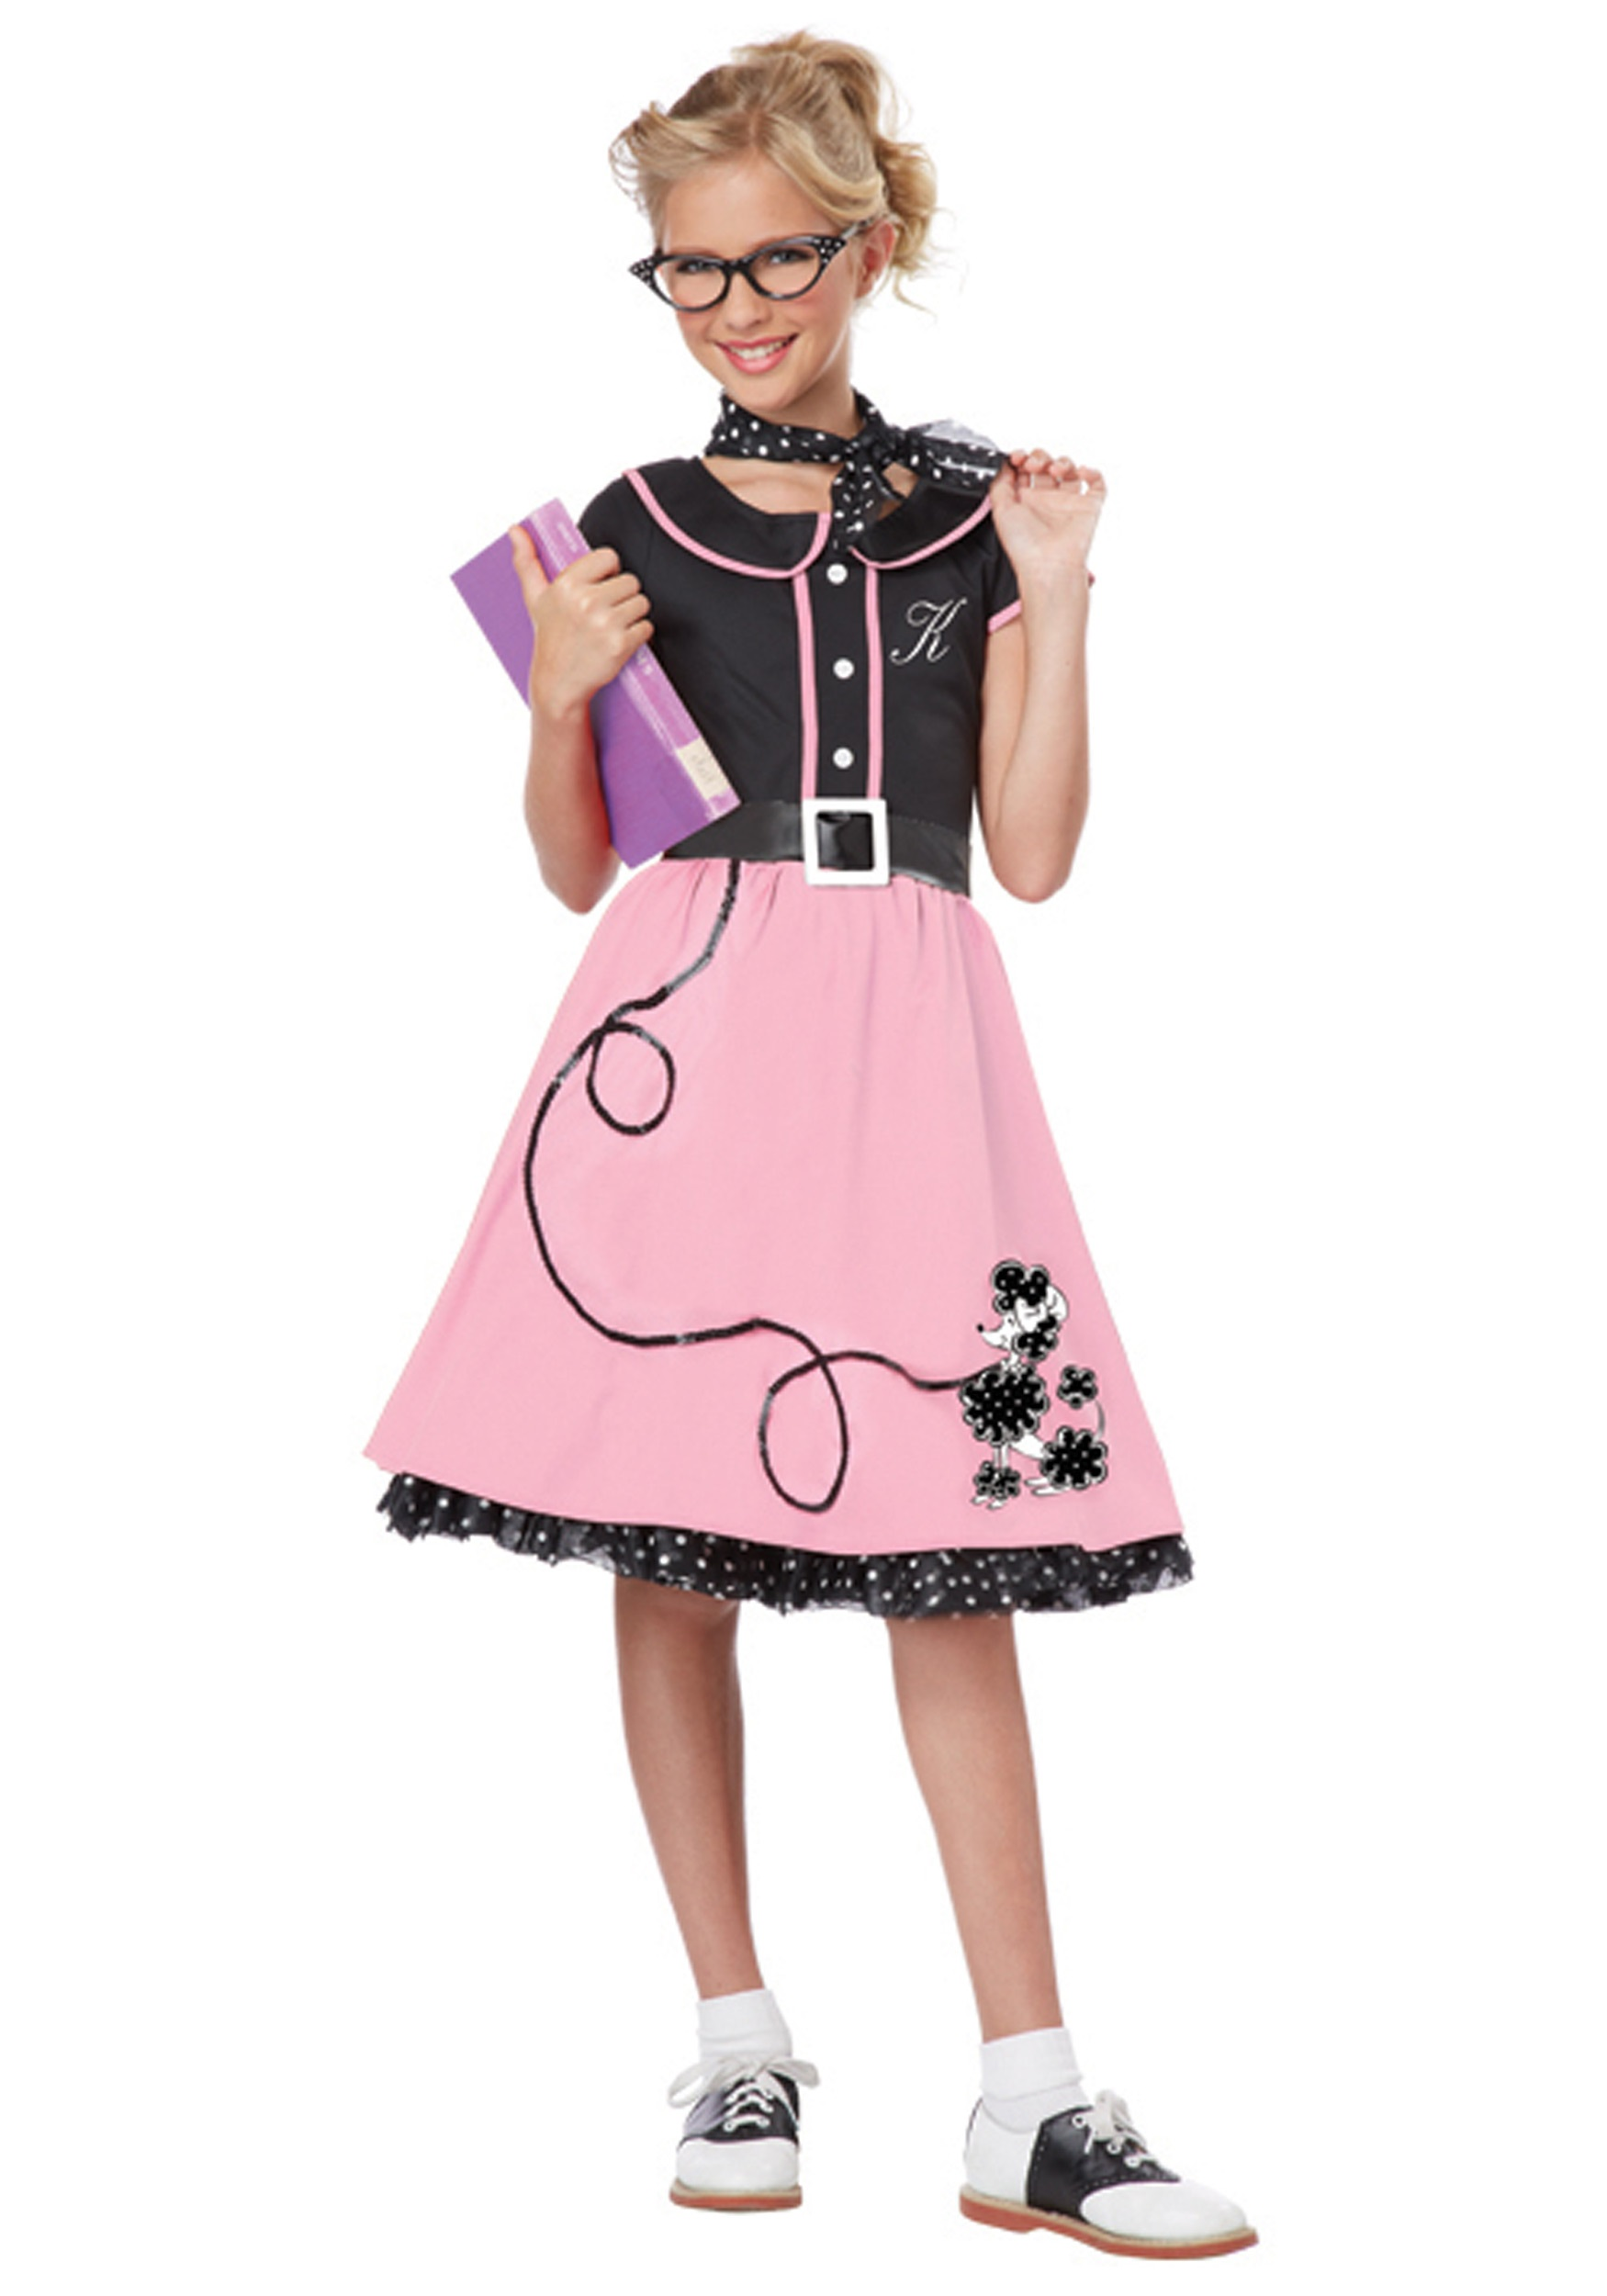 Girls Pink 50s Sweetheart Costume  sc 1 st  Halloween Costumes & Girls Pink 50s Sweetheart Costume - Halloween Costumes